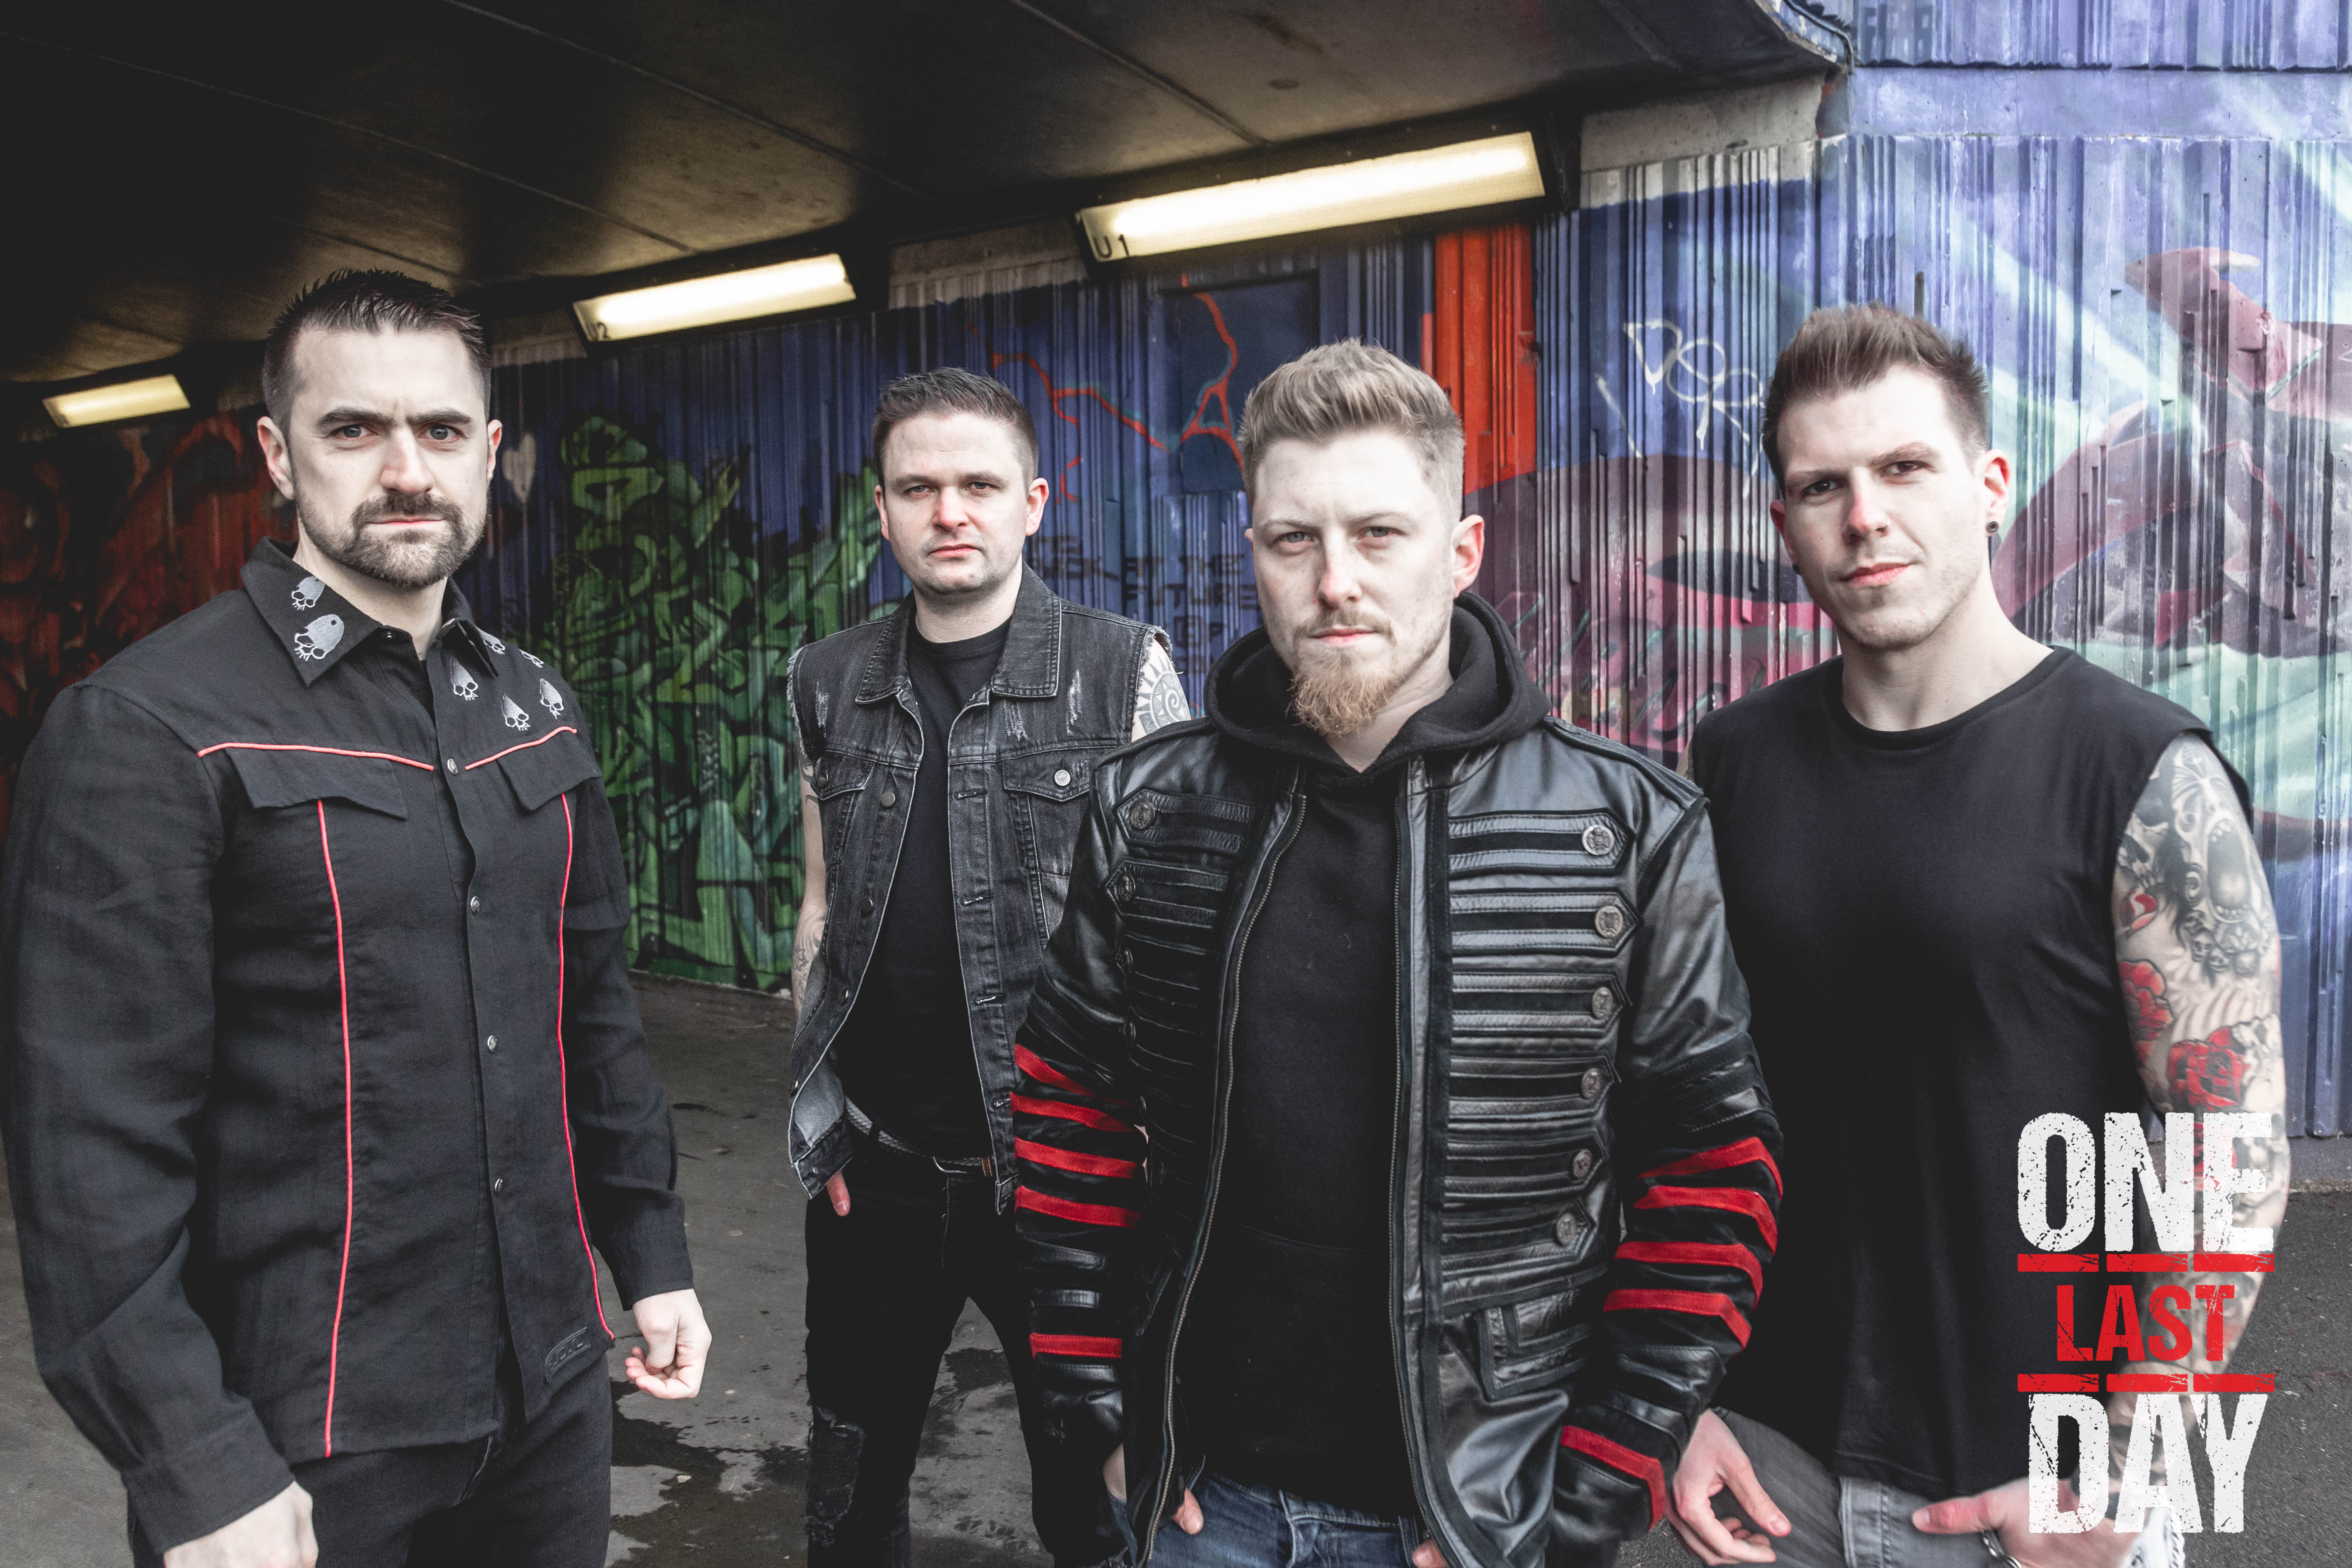 One Last Day unleashes 'Not Ready To Die'